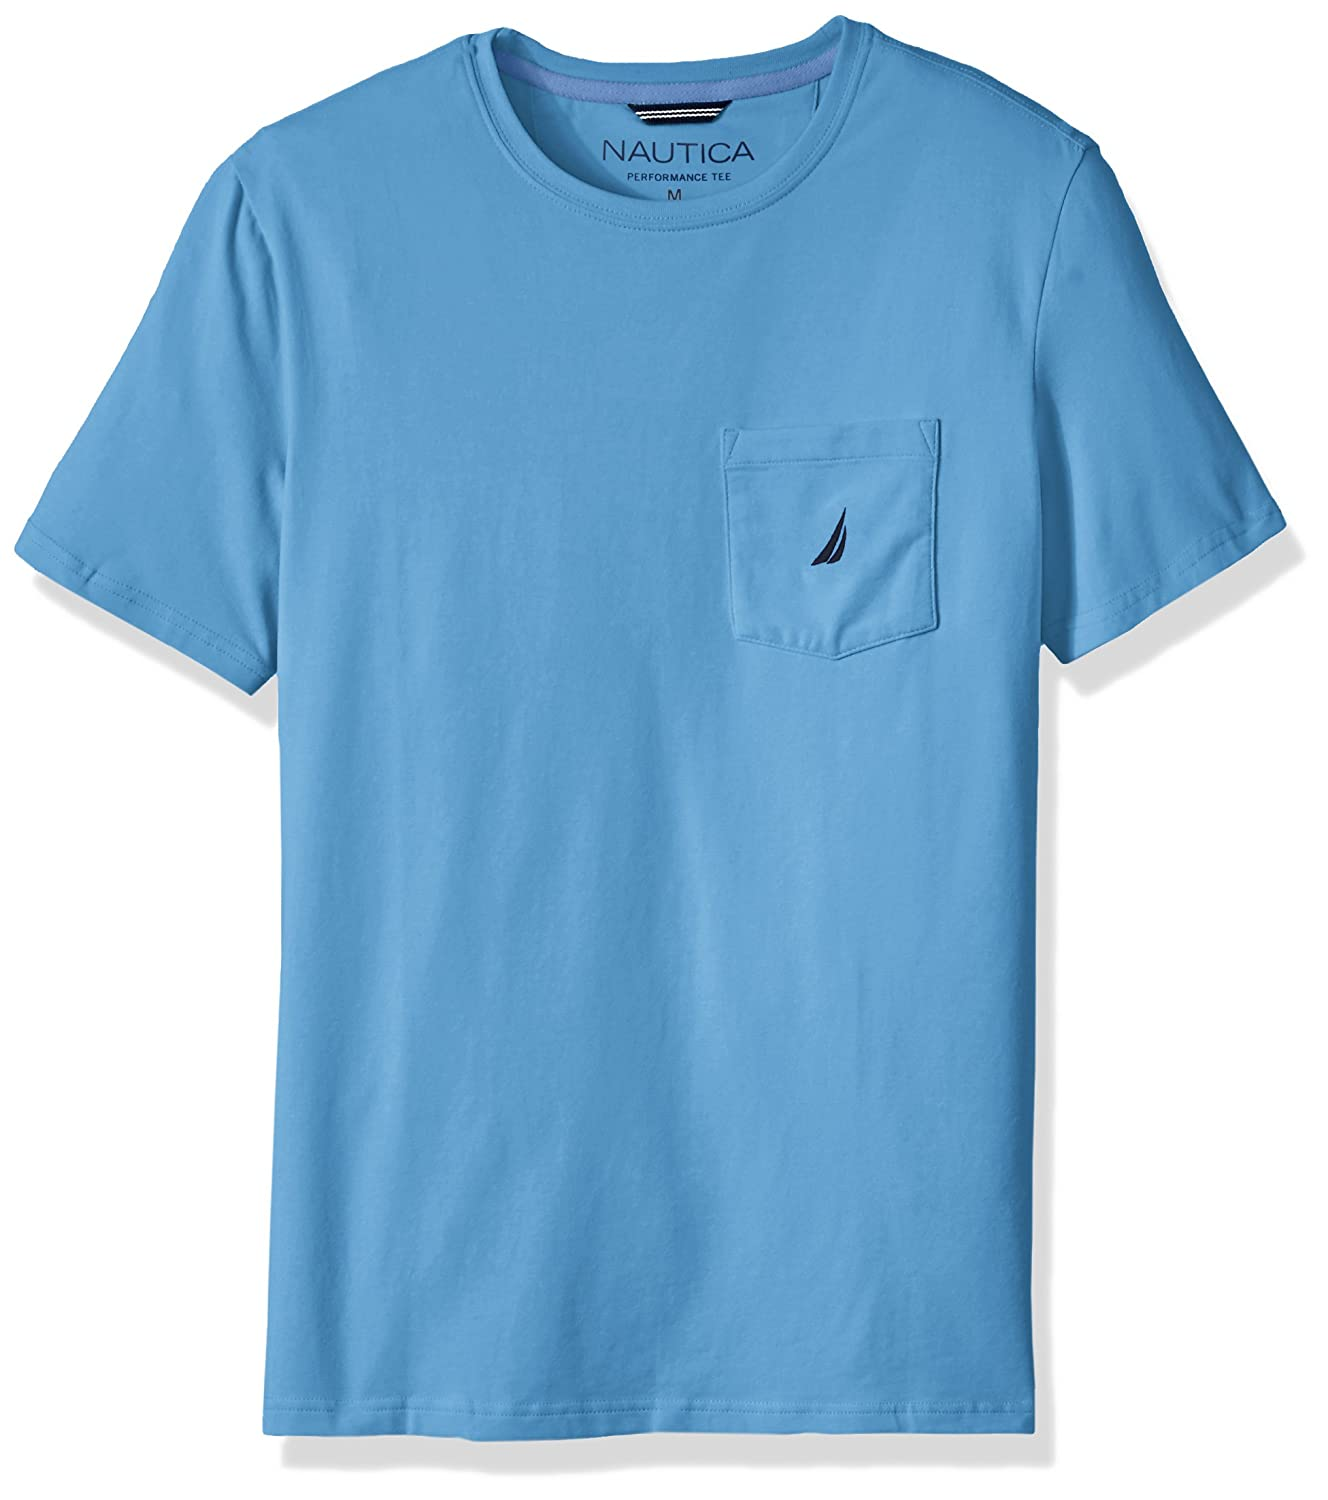 a0b60cec Simply put, every guy needs a solid collection of pocket t-shirts in his  collection. This cotton style from Nautica one ups its classic roots with a  touch ...